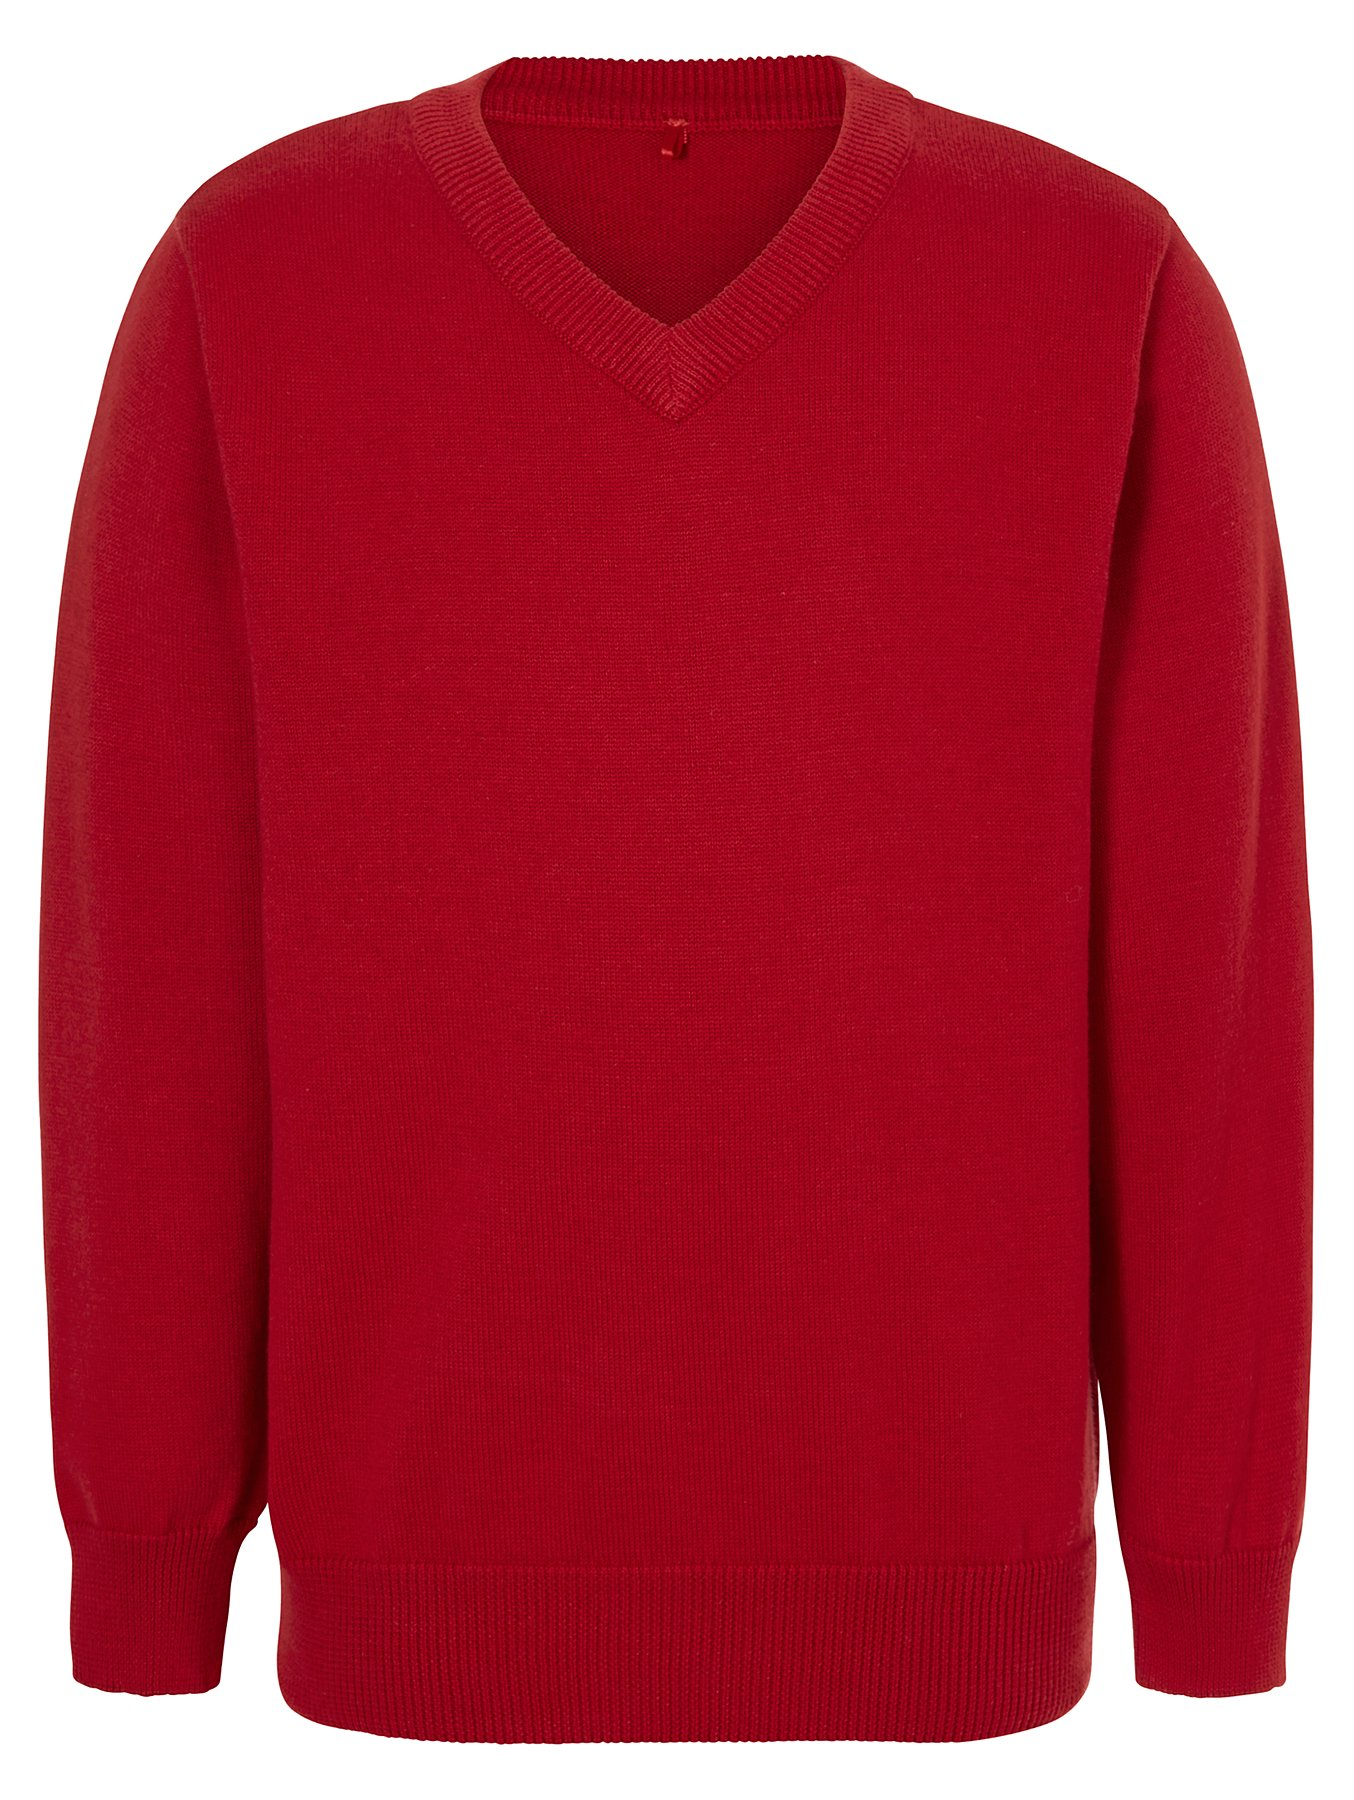 pretty nice discount collection famous brand Red V-Neck School Jumper